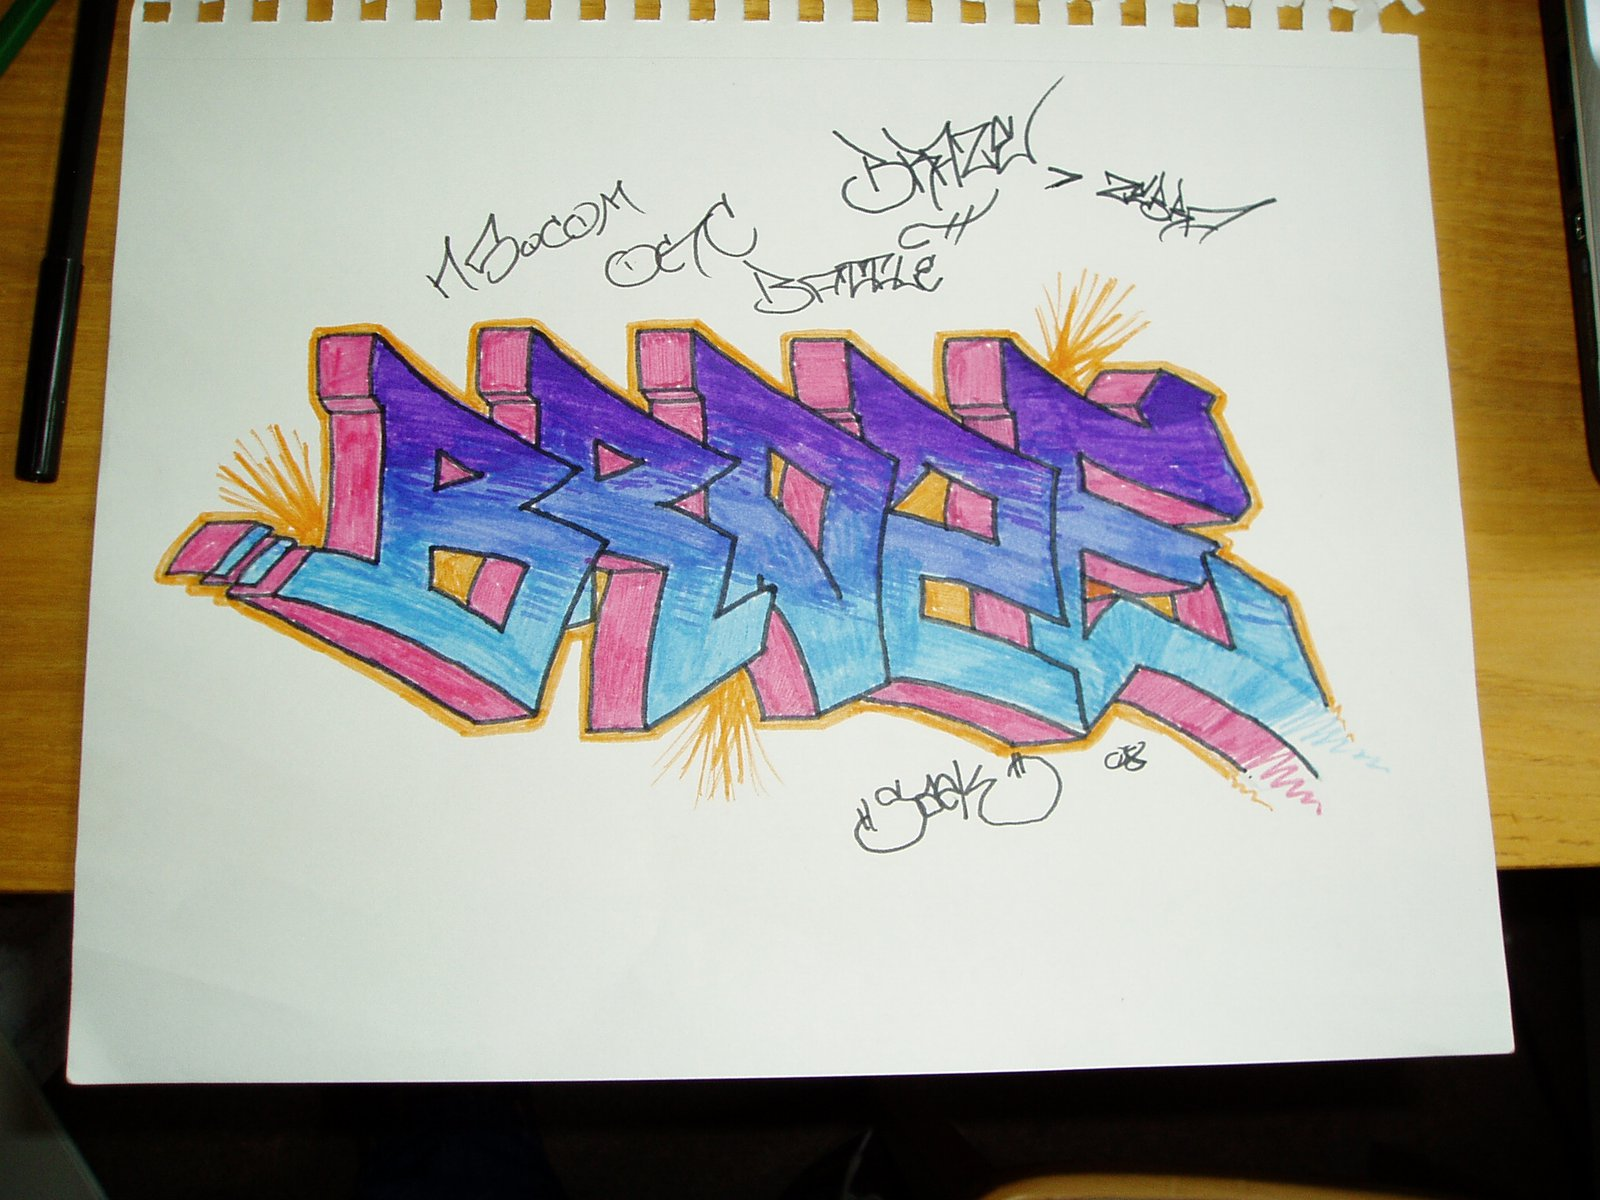 Official Graff Cult Battle Entry...